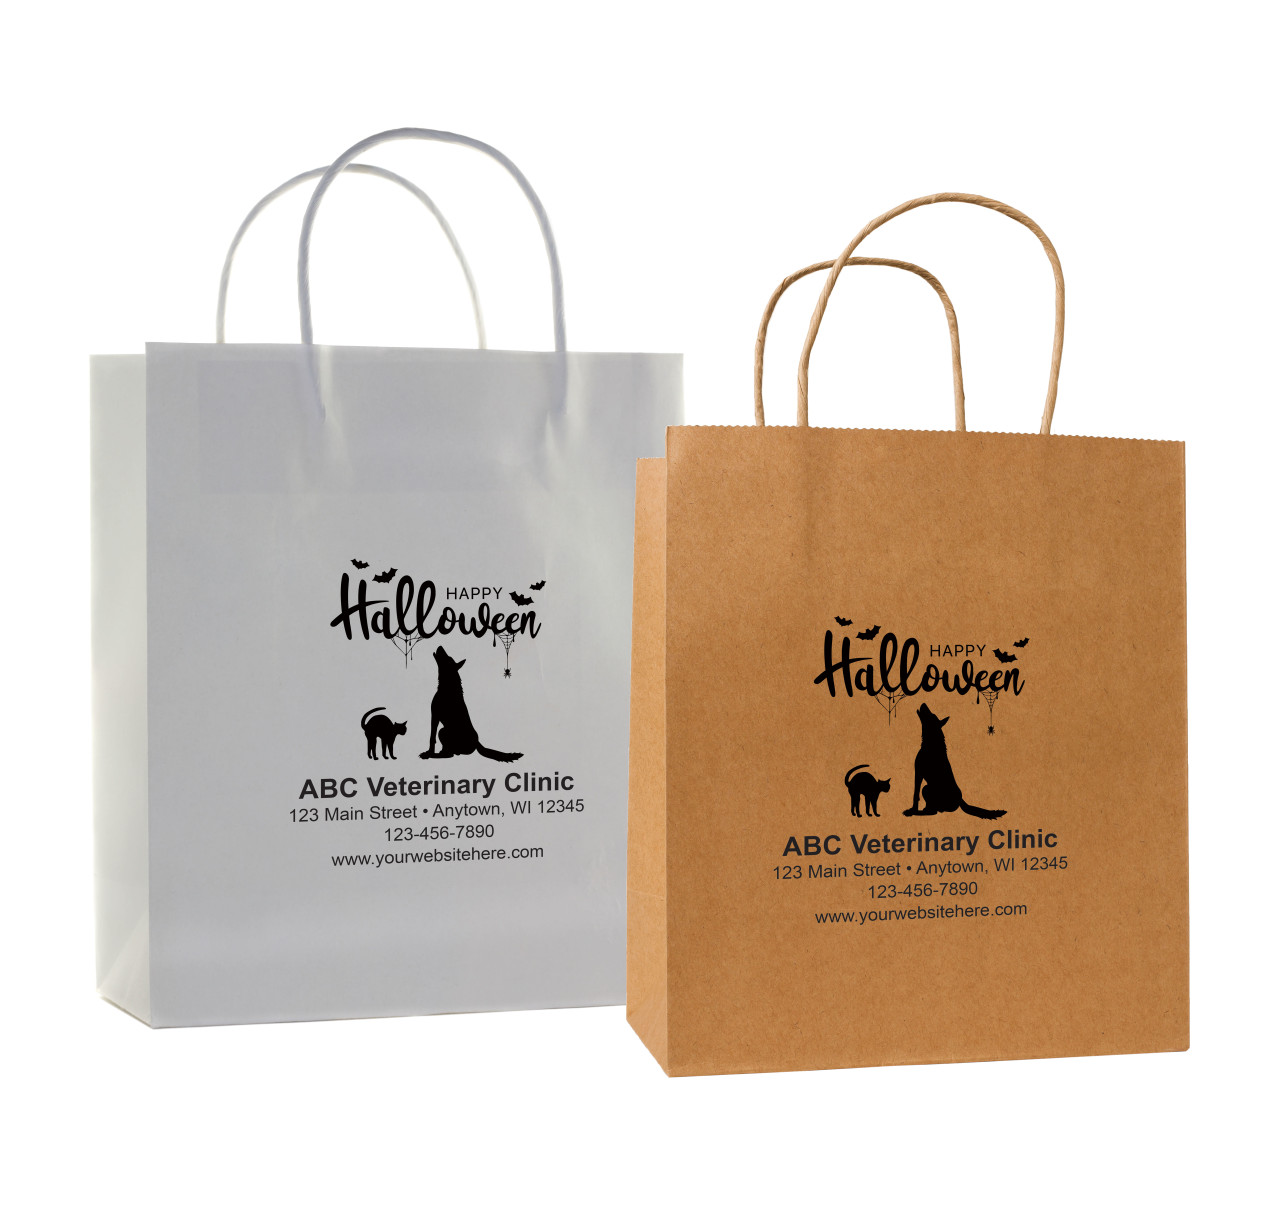 HSD22 - Personalized Handled Paper Bag (Multiple Imprint Colors Available)